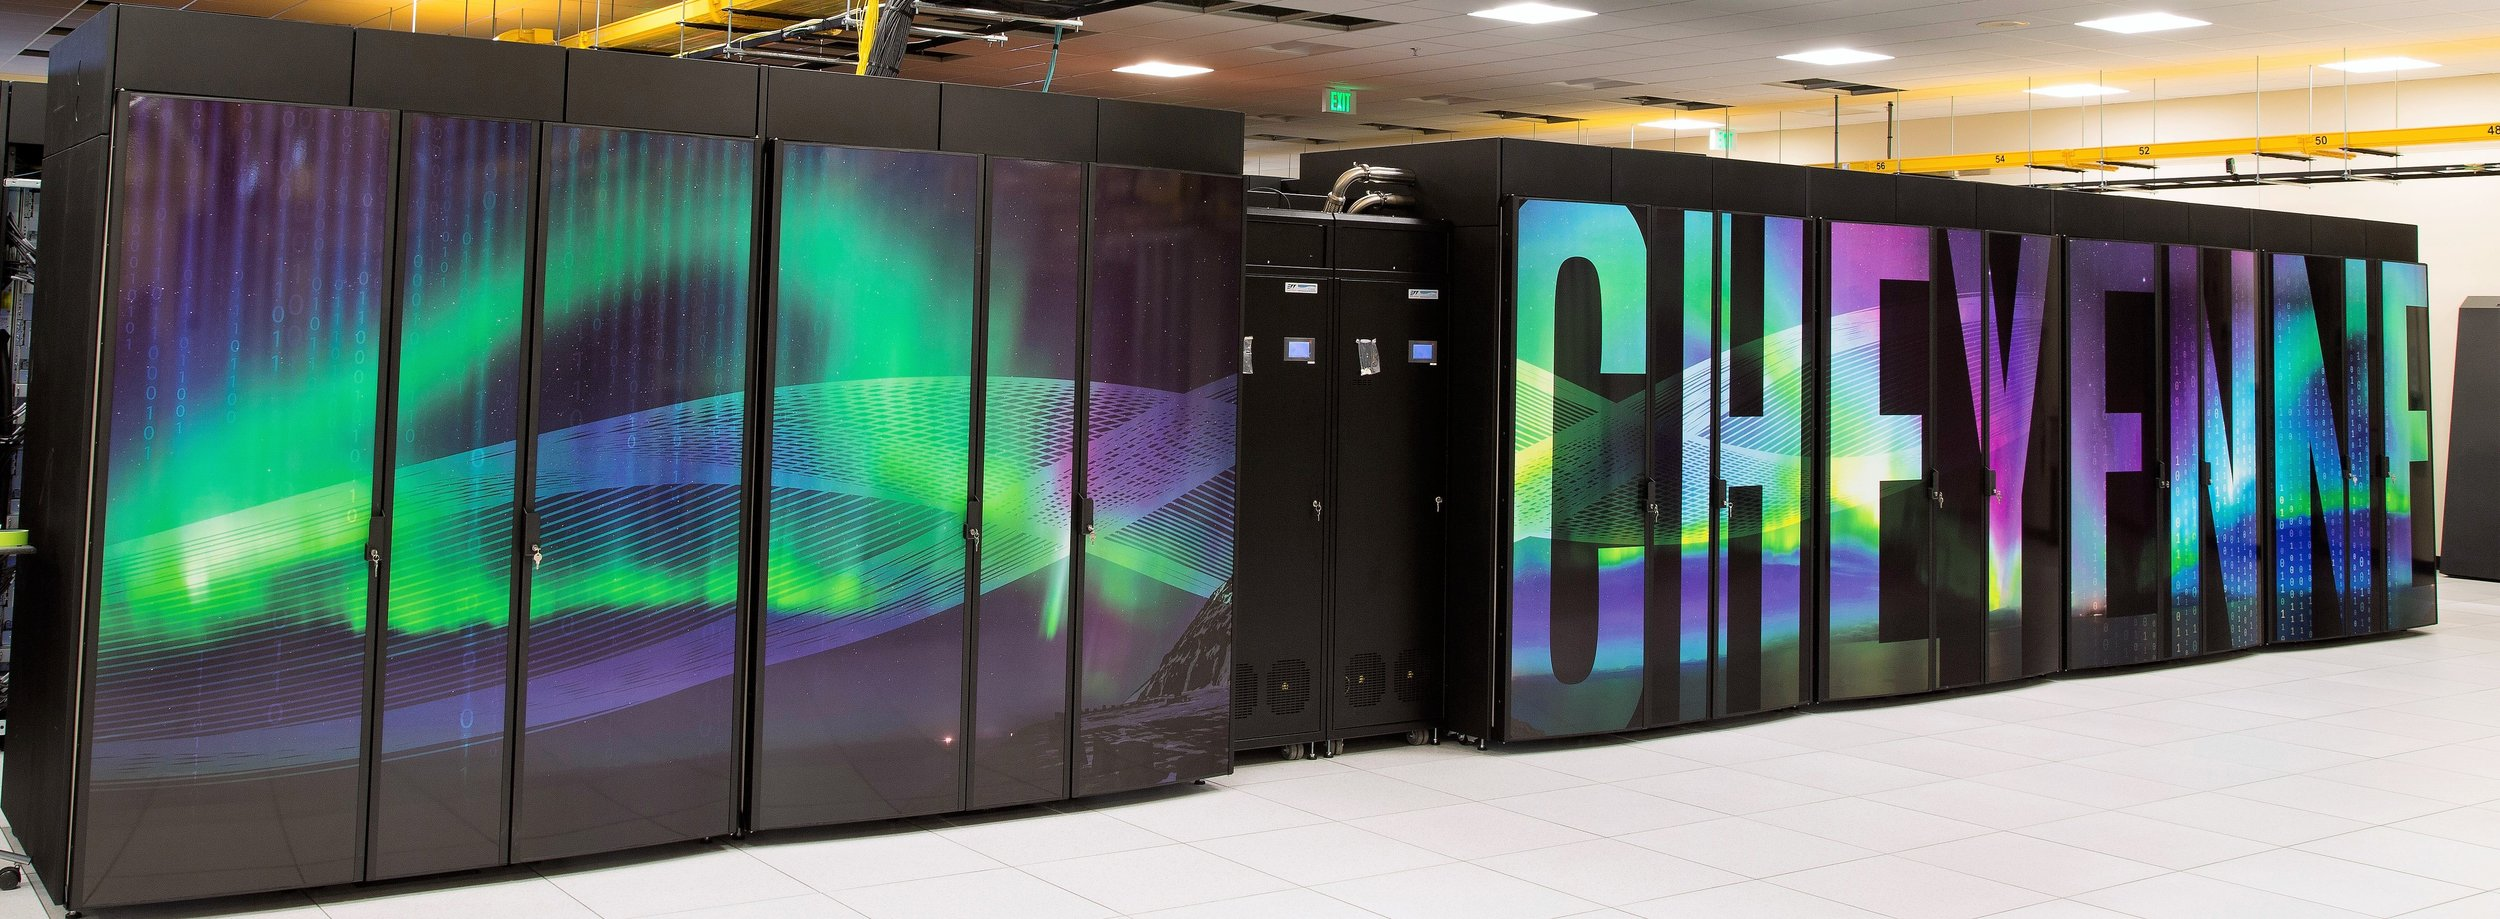 Cheyenne was ranked as the 40th most powerful supercomputer in the world by  TOP500 in June 2019 .